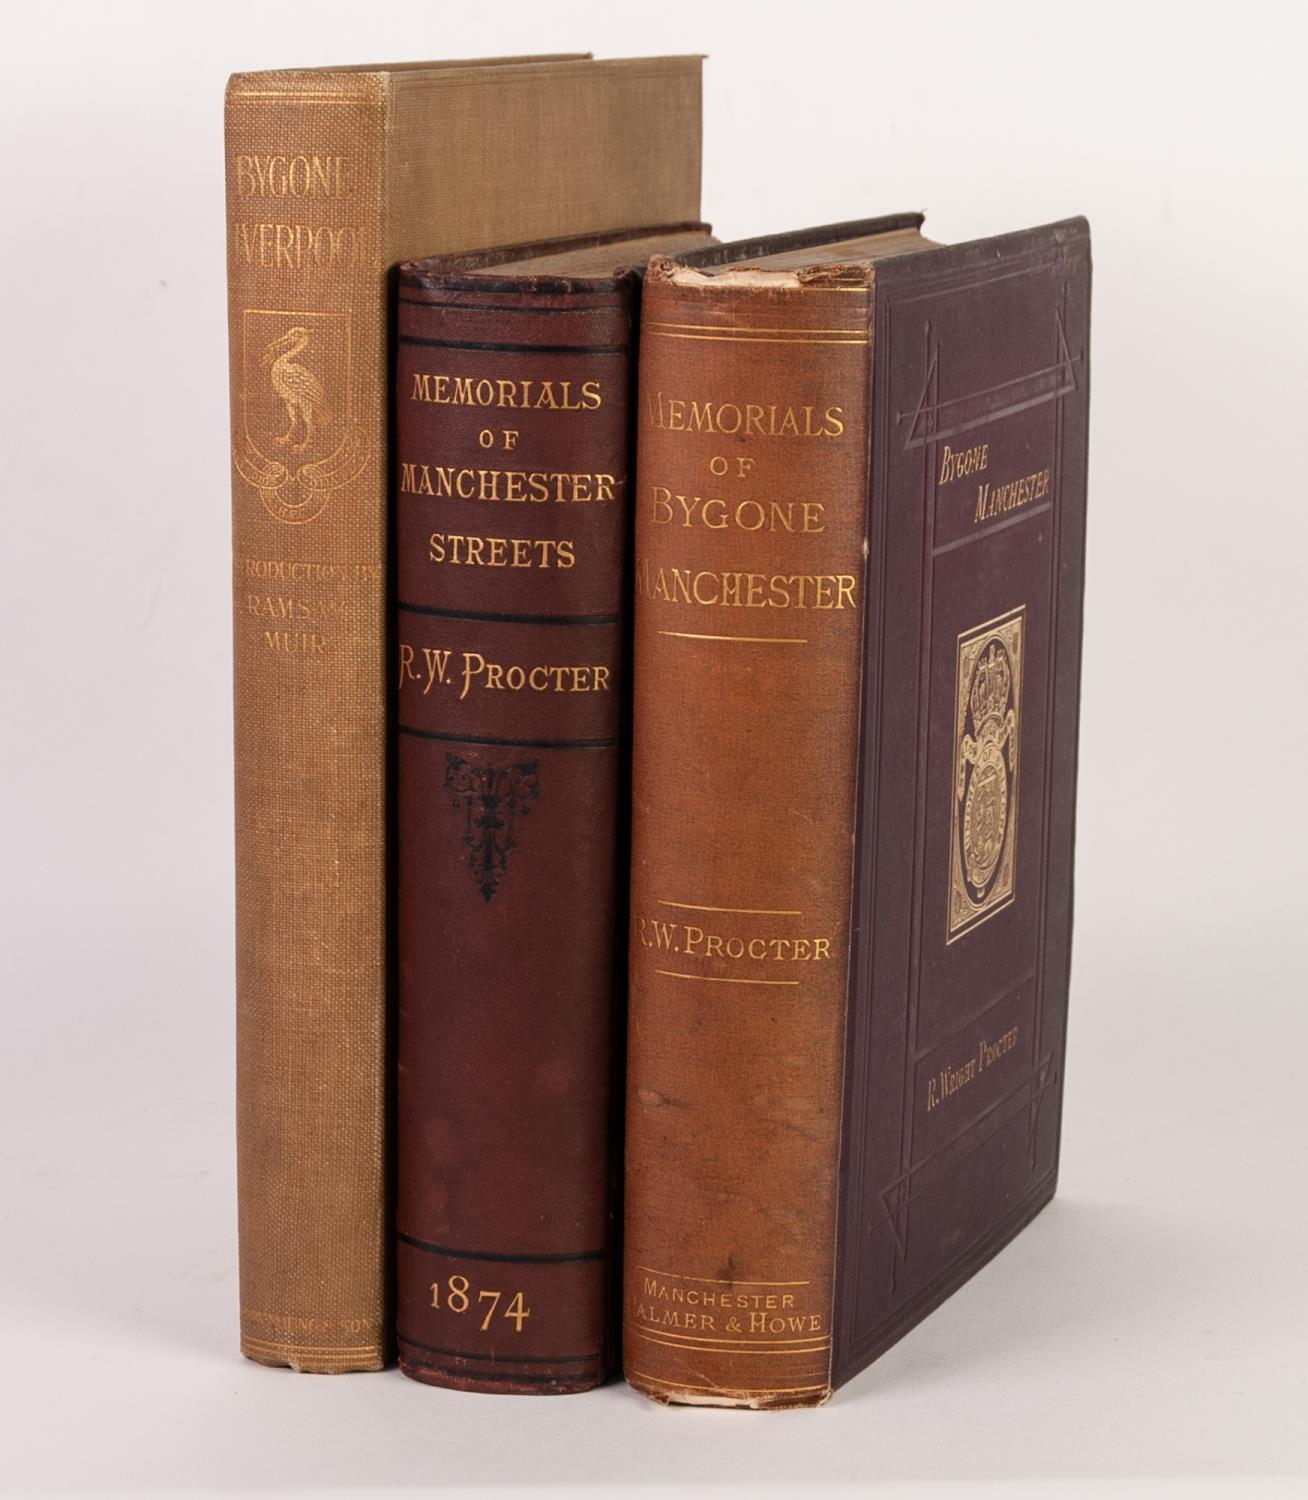 Lot 153 - TOPOGRAPHY. Ramsey Muir-Bygone Liverpool, pub Henry Young & Son 1913. R W Proctor-Memorials? of